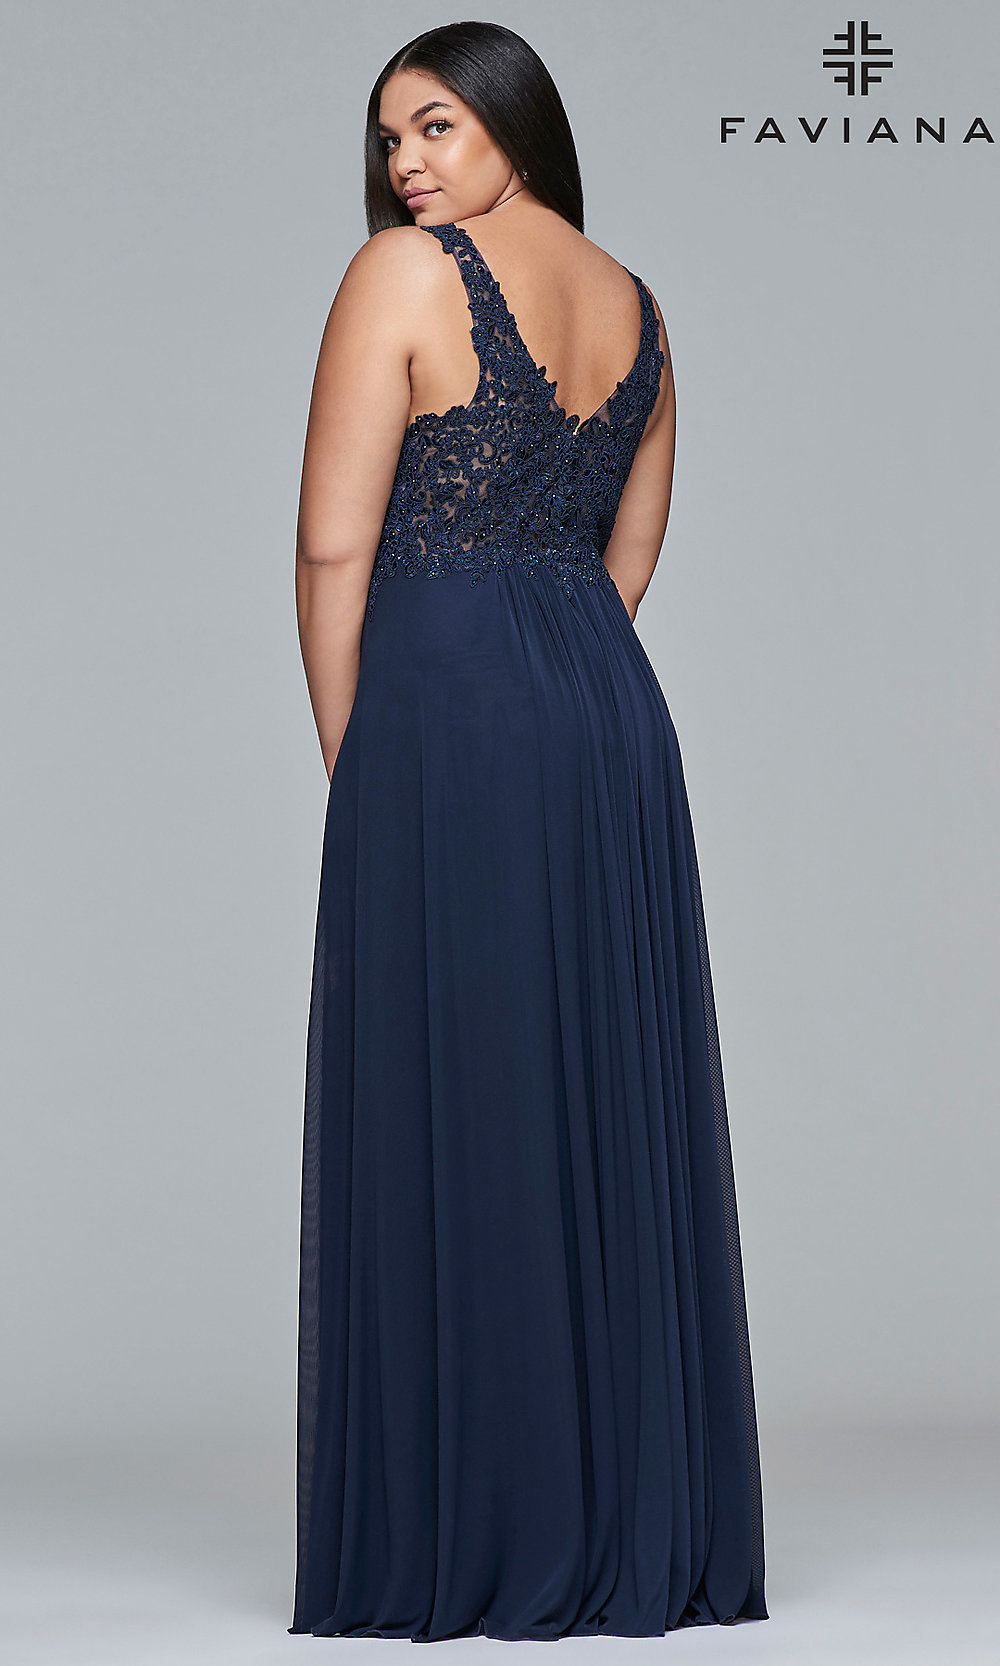 ab6a41b25a1 ... Faviana plus-size embroidered prom dress. Style  FA-9428. Tap to expand